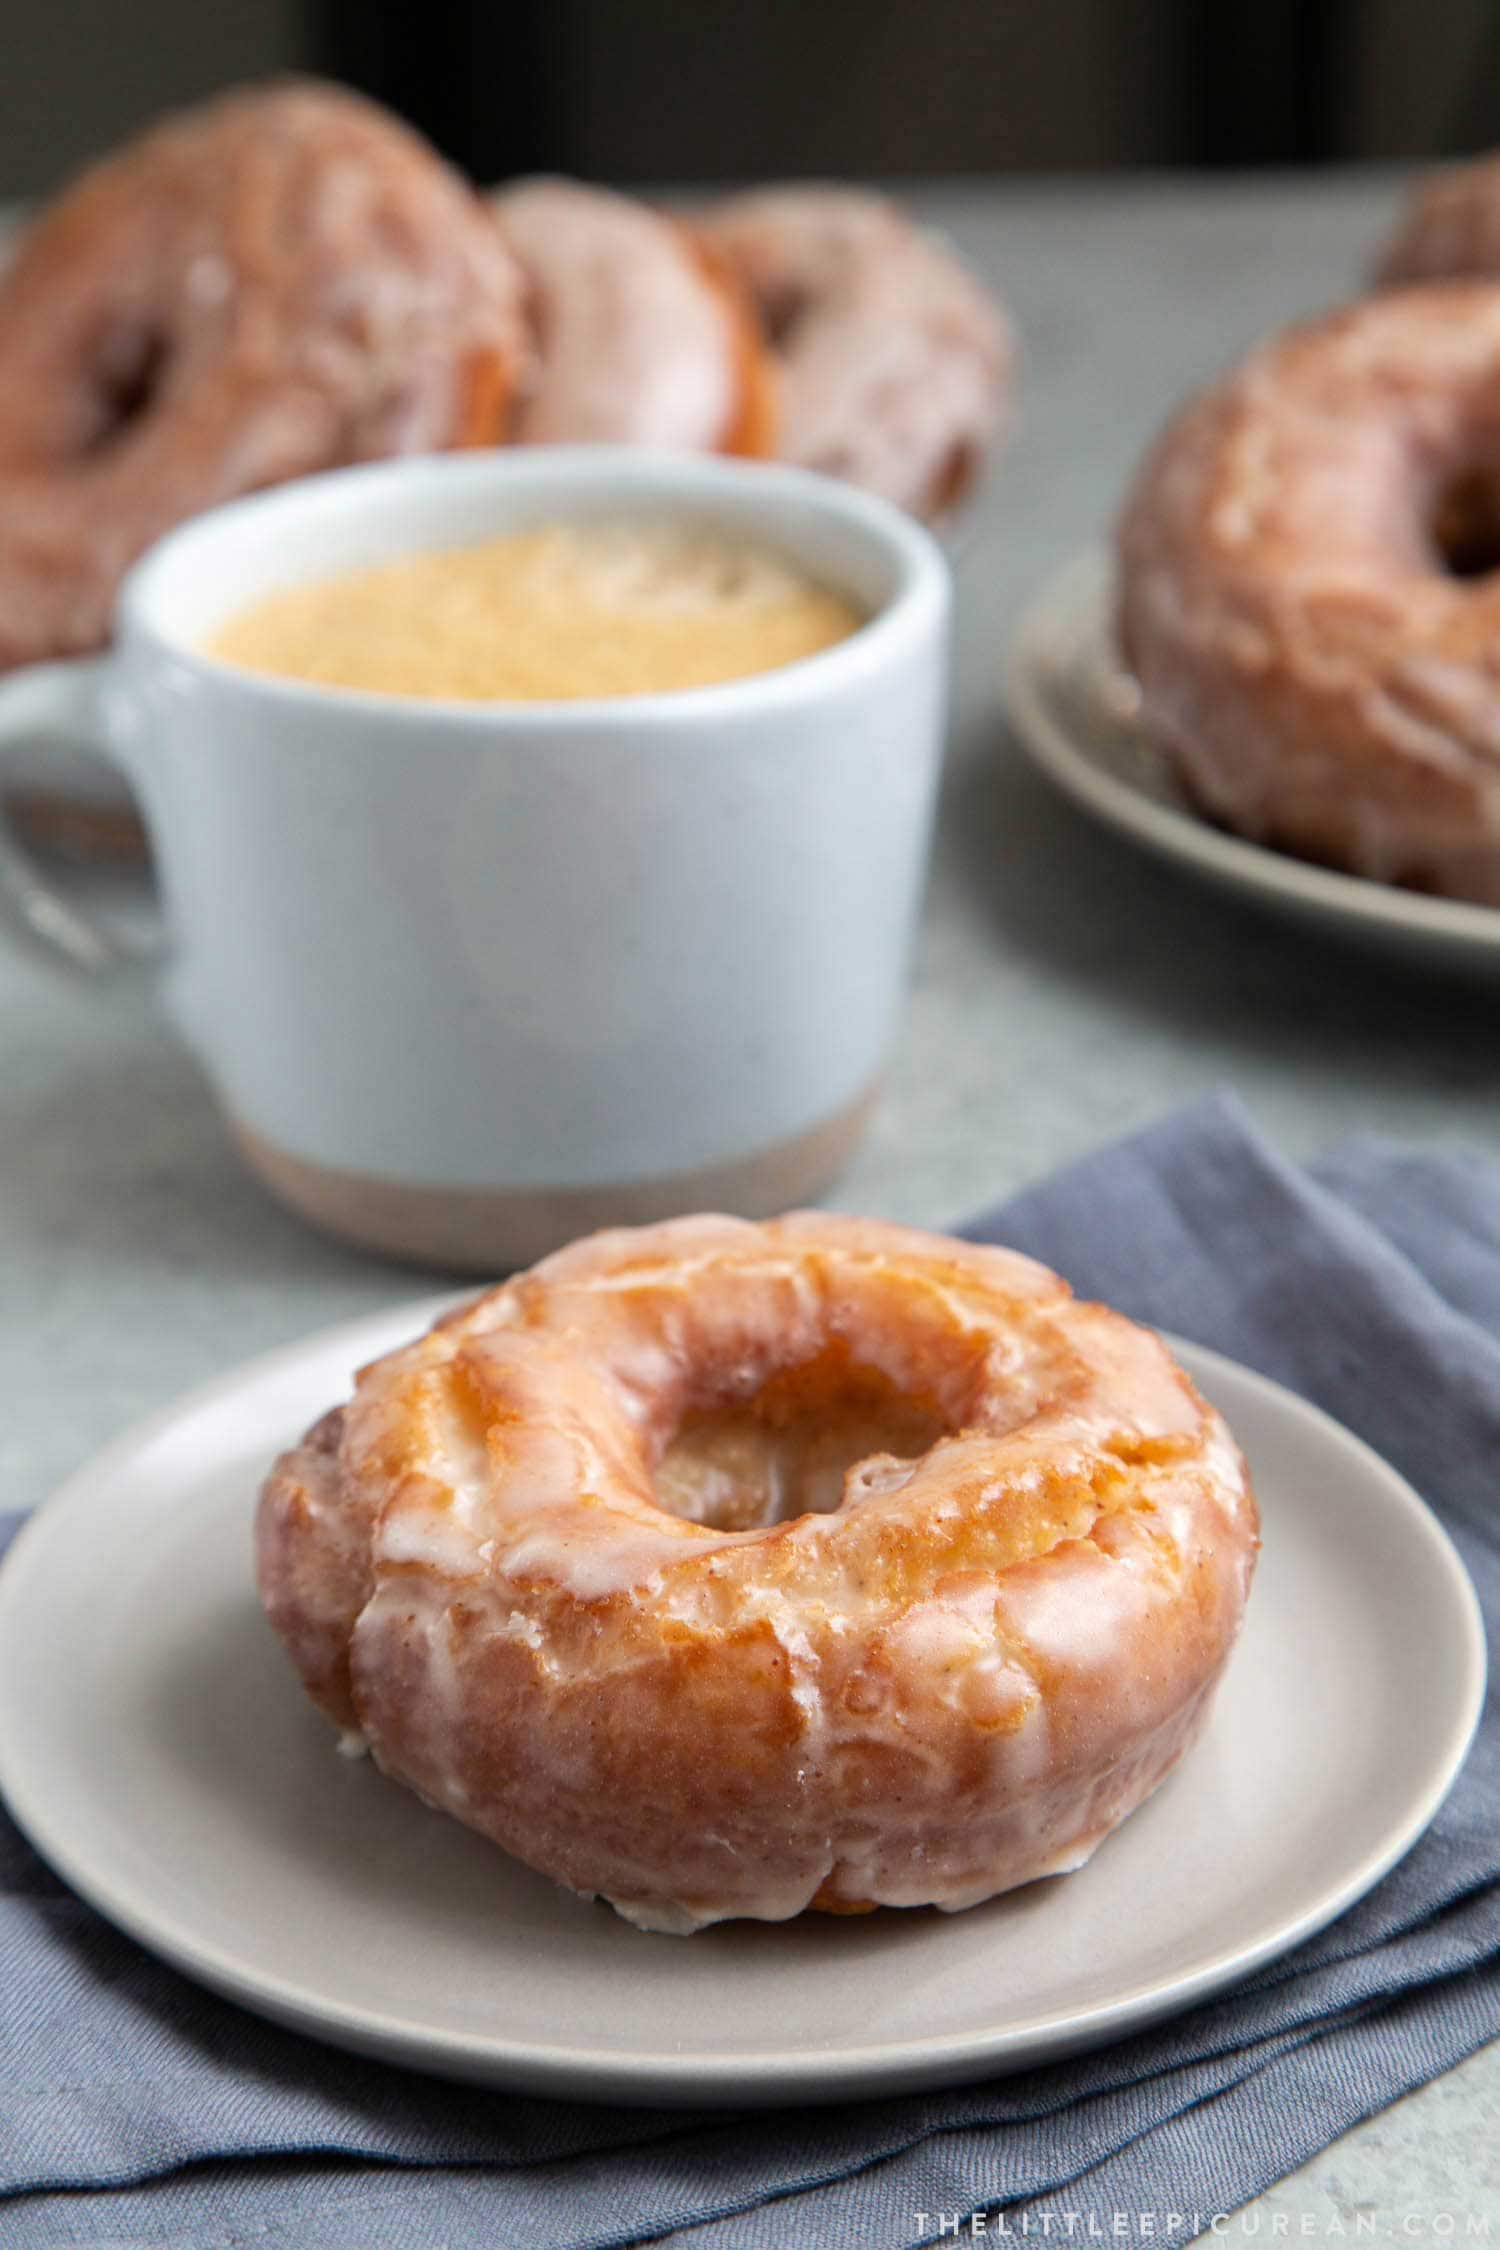 Brown Butter Glazed Old Fashioned Donuts #donuts #oldfashioned #oldfashioneddonuts #brownbutter #doughnuts